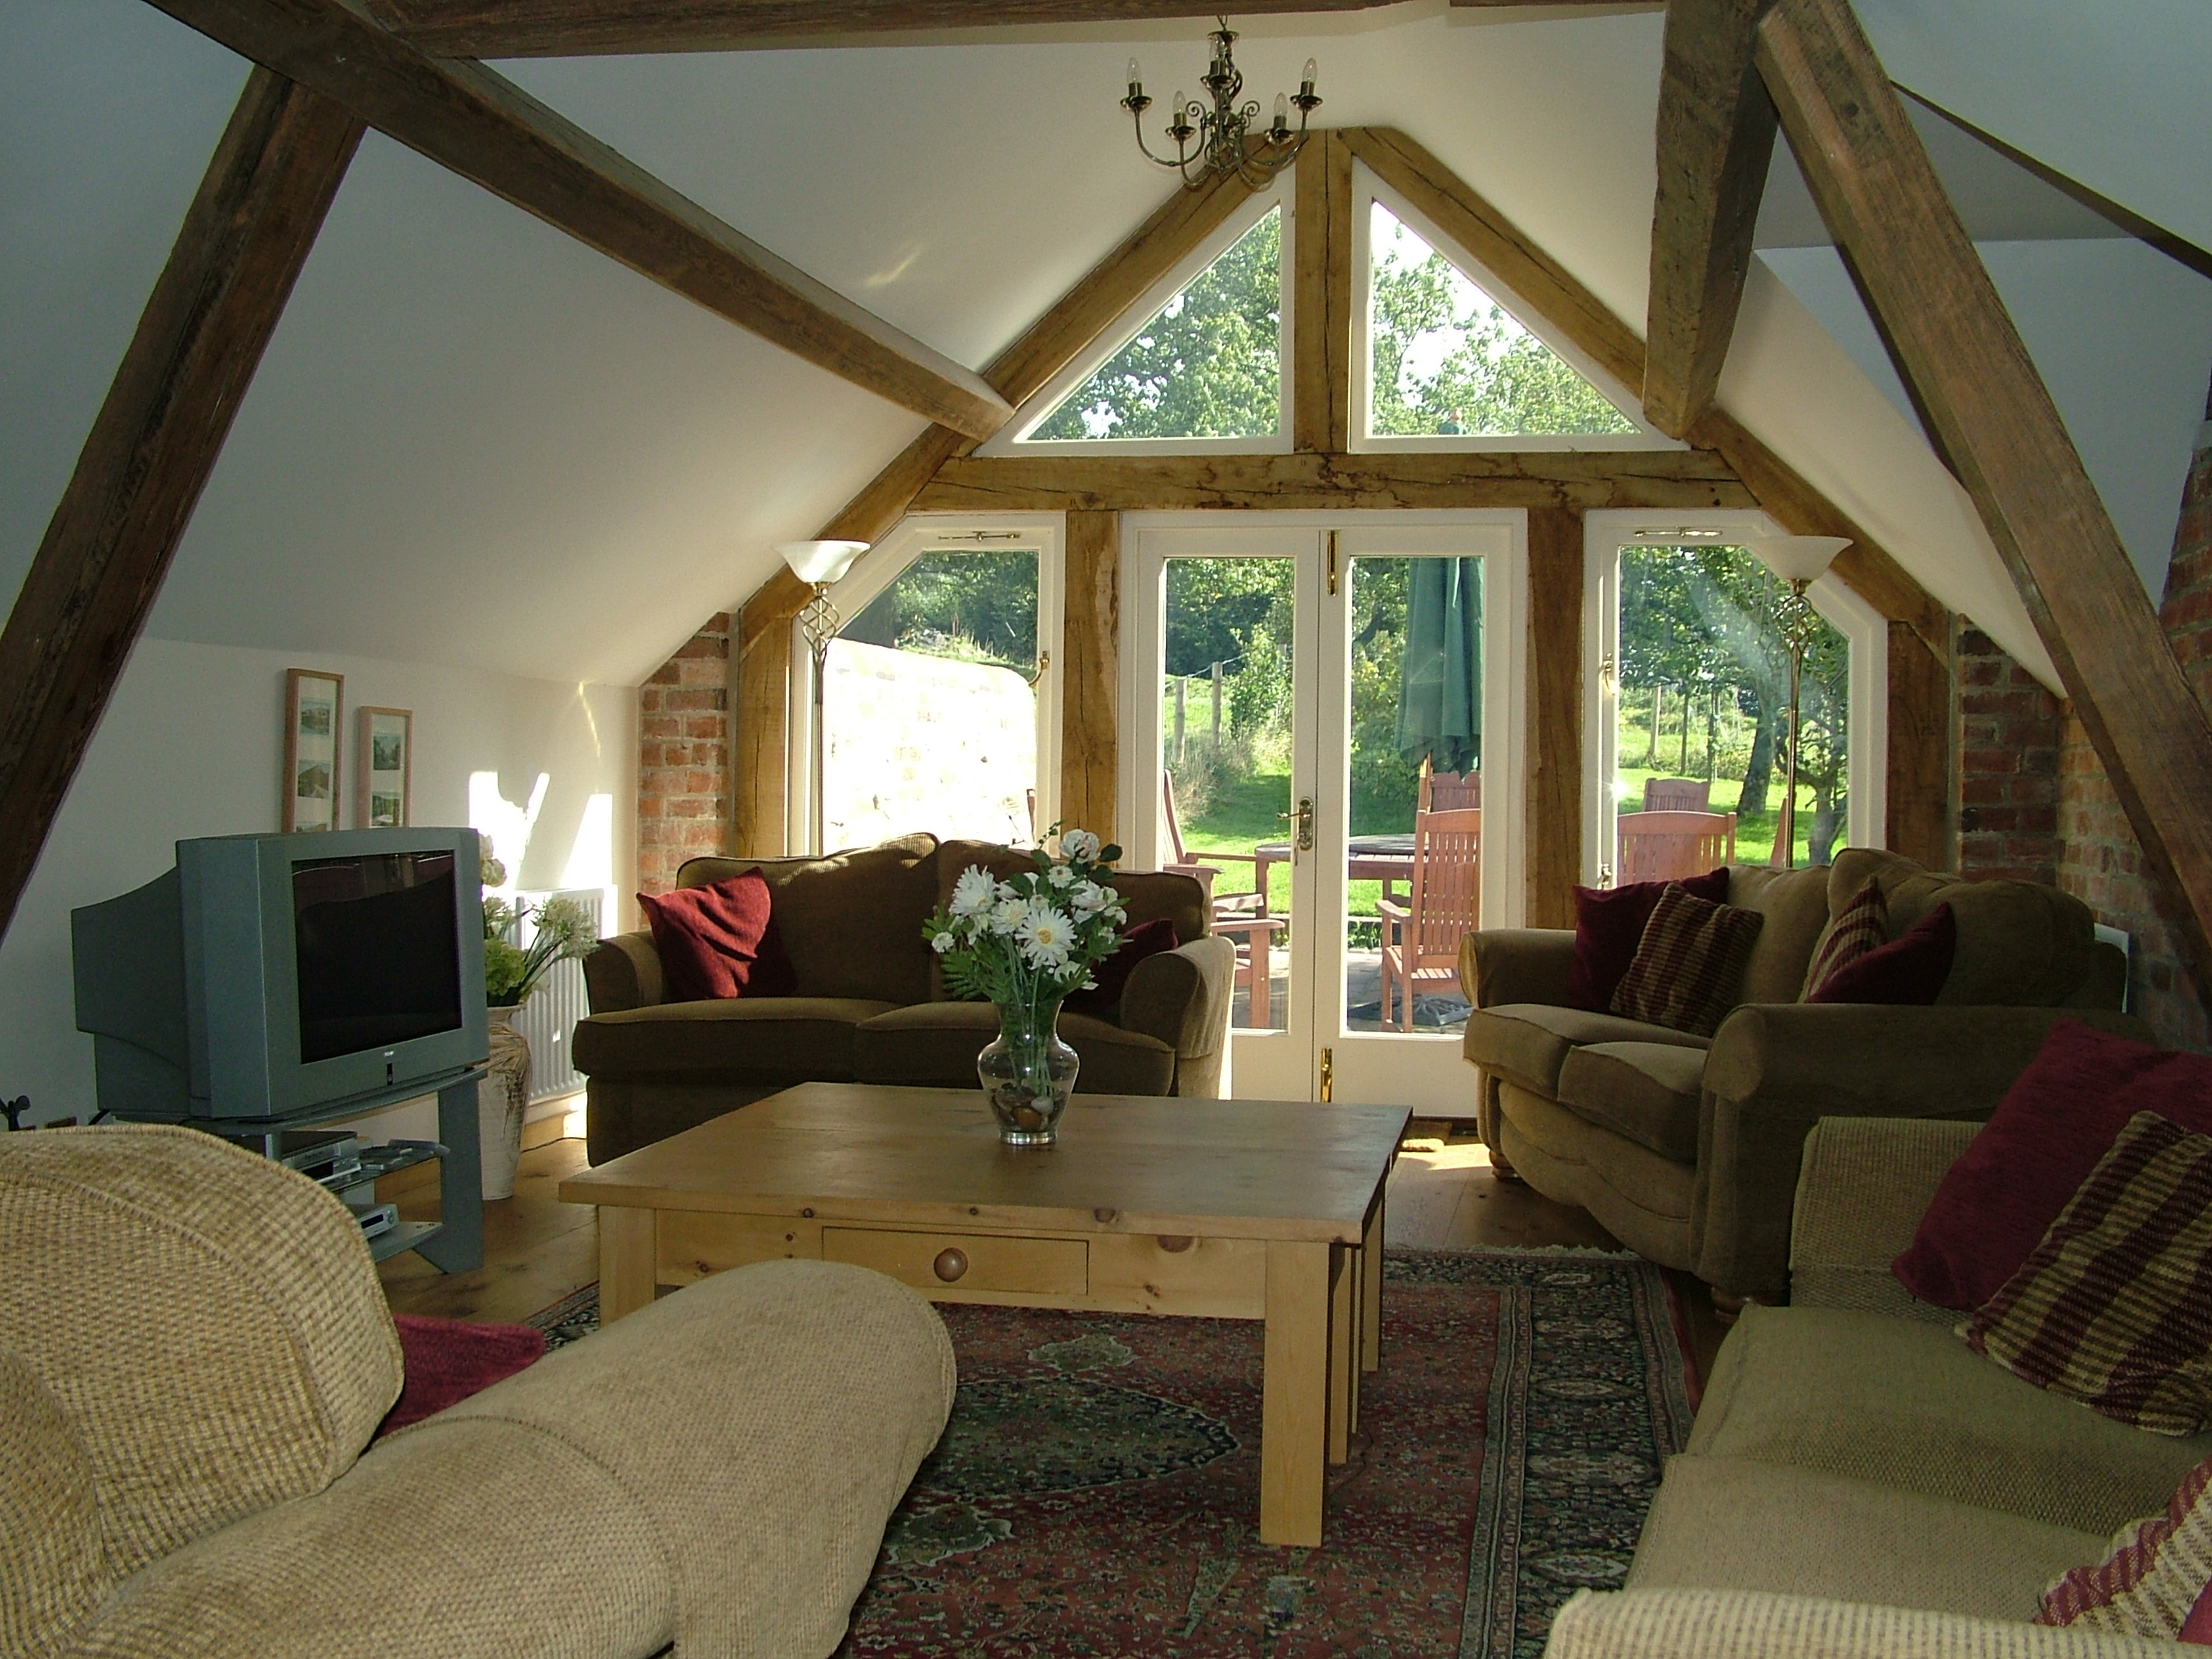 Five star holiday cottages Derbyshire